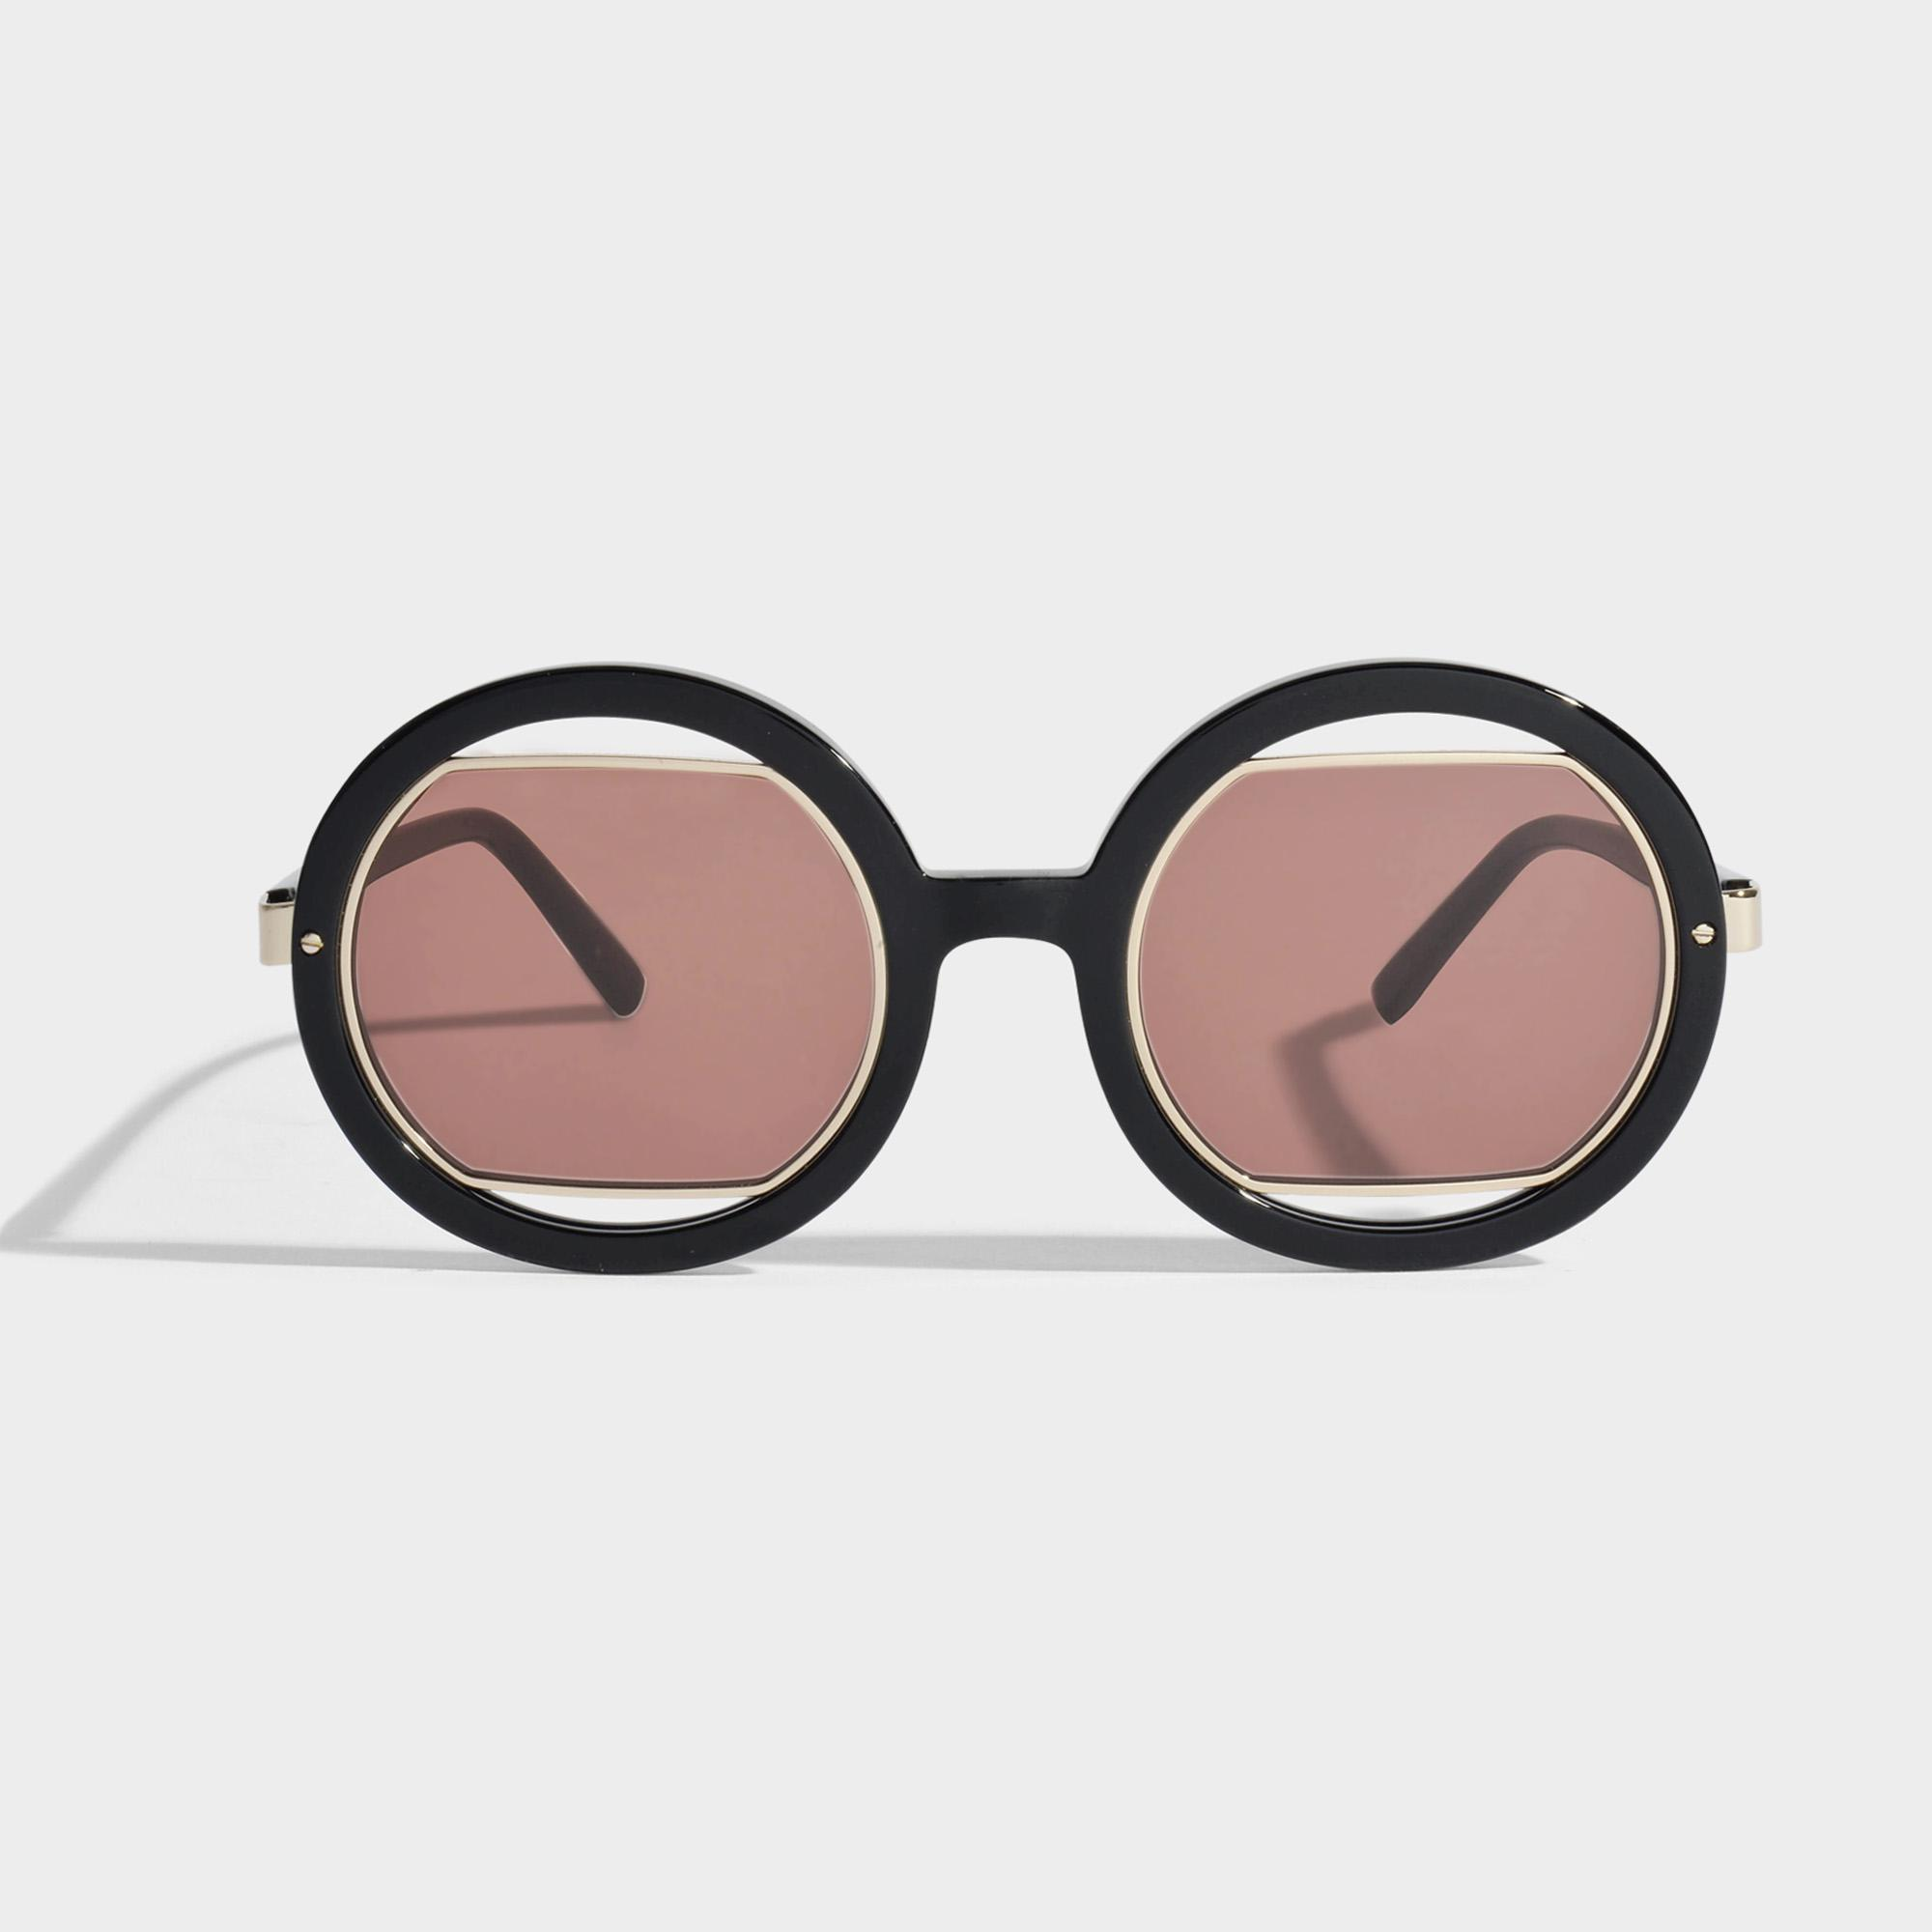 054fea3d164 Marni Show Round Sunglasses In Black Acetate And Metal - Lyst